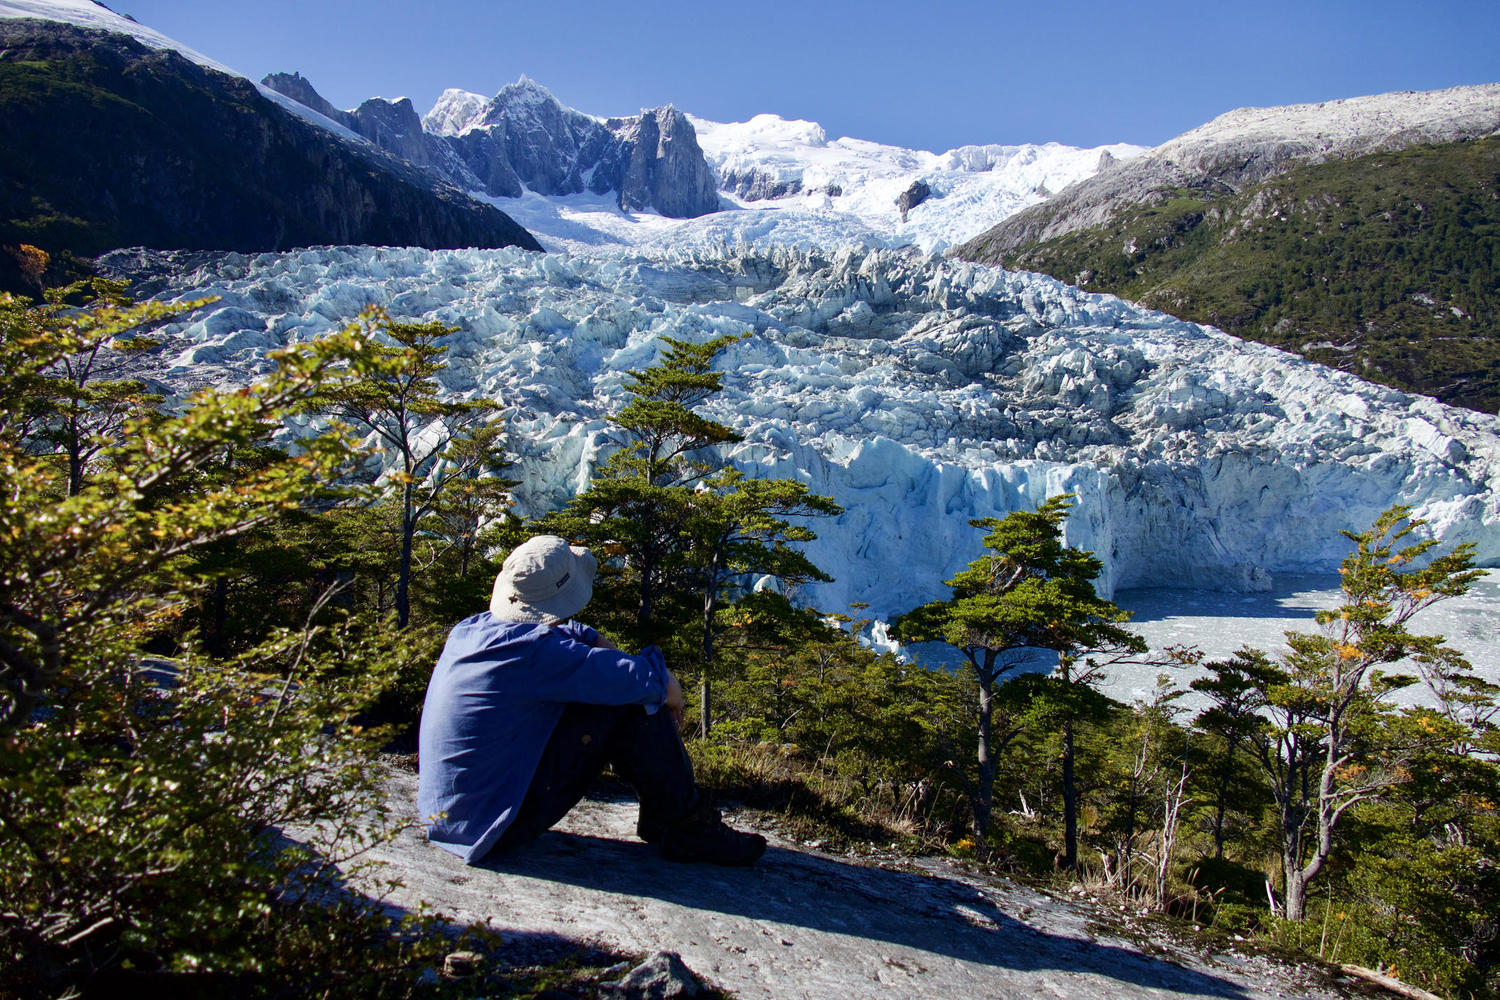 Solo man looking out over Pia Glacier